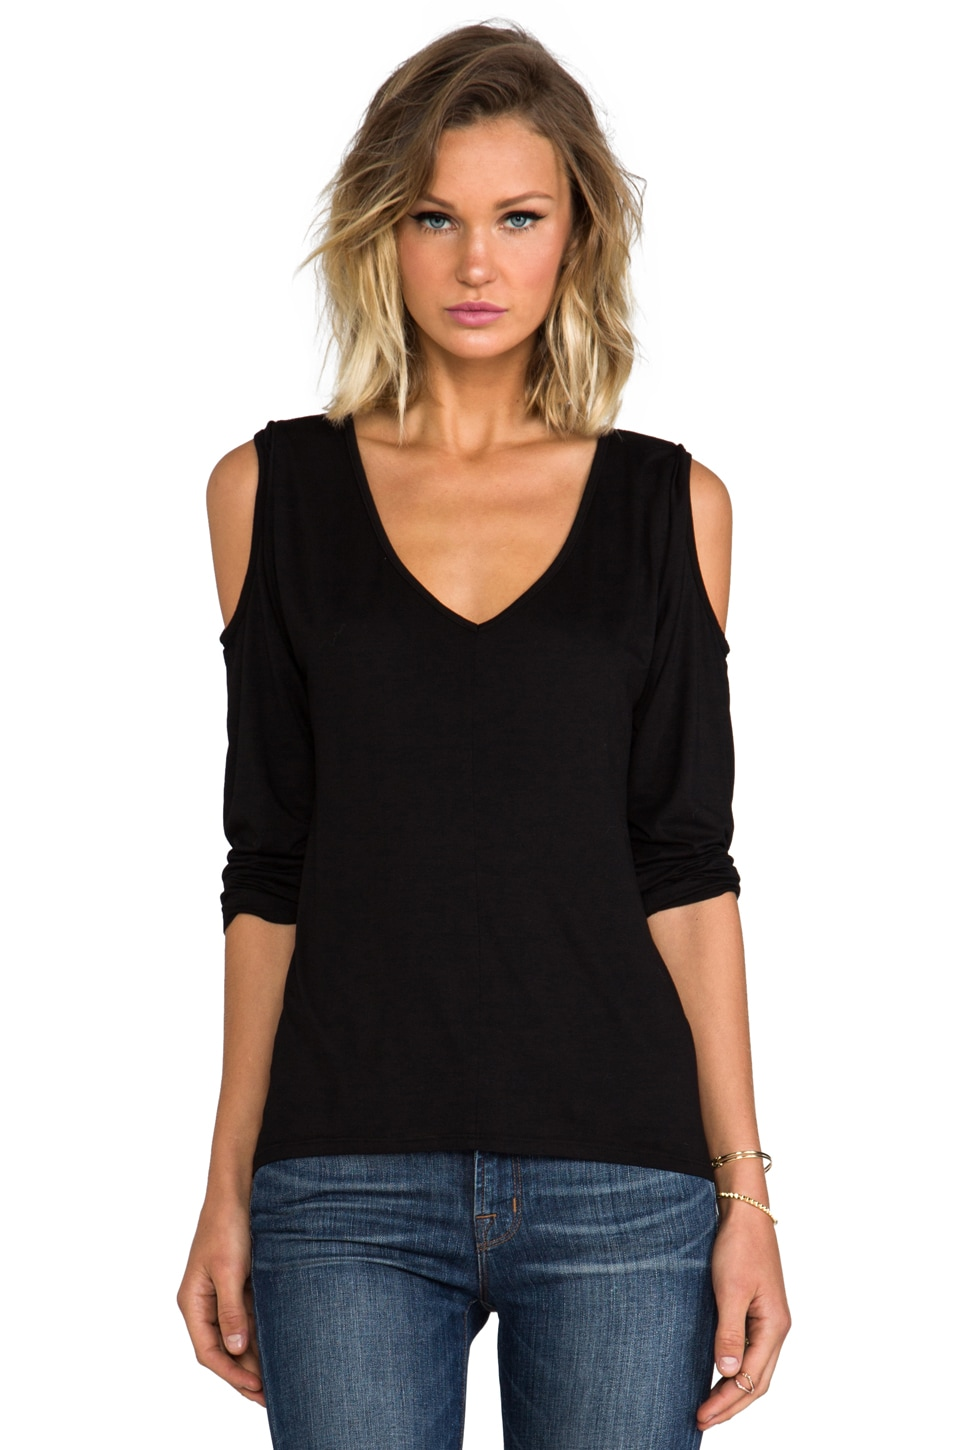 Feel the Piece Aspen Top in Black